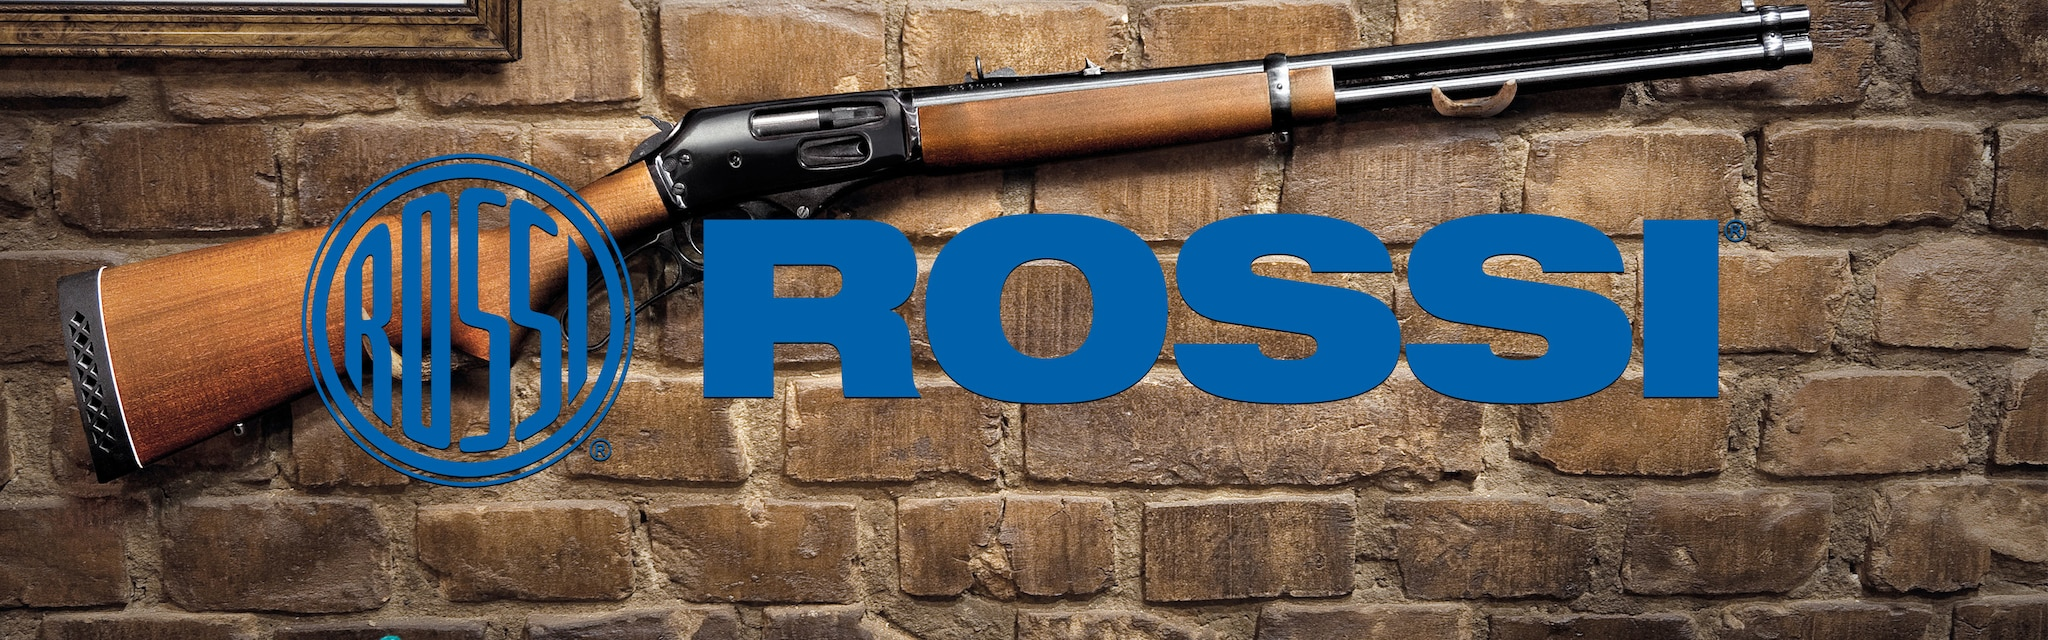 Rossi Firearms Brand Page